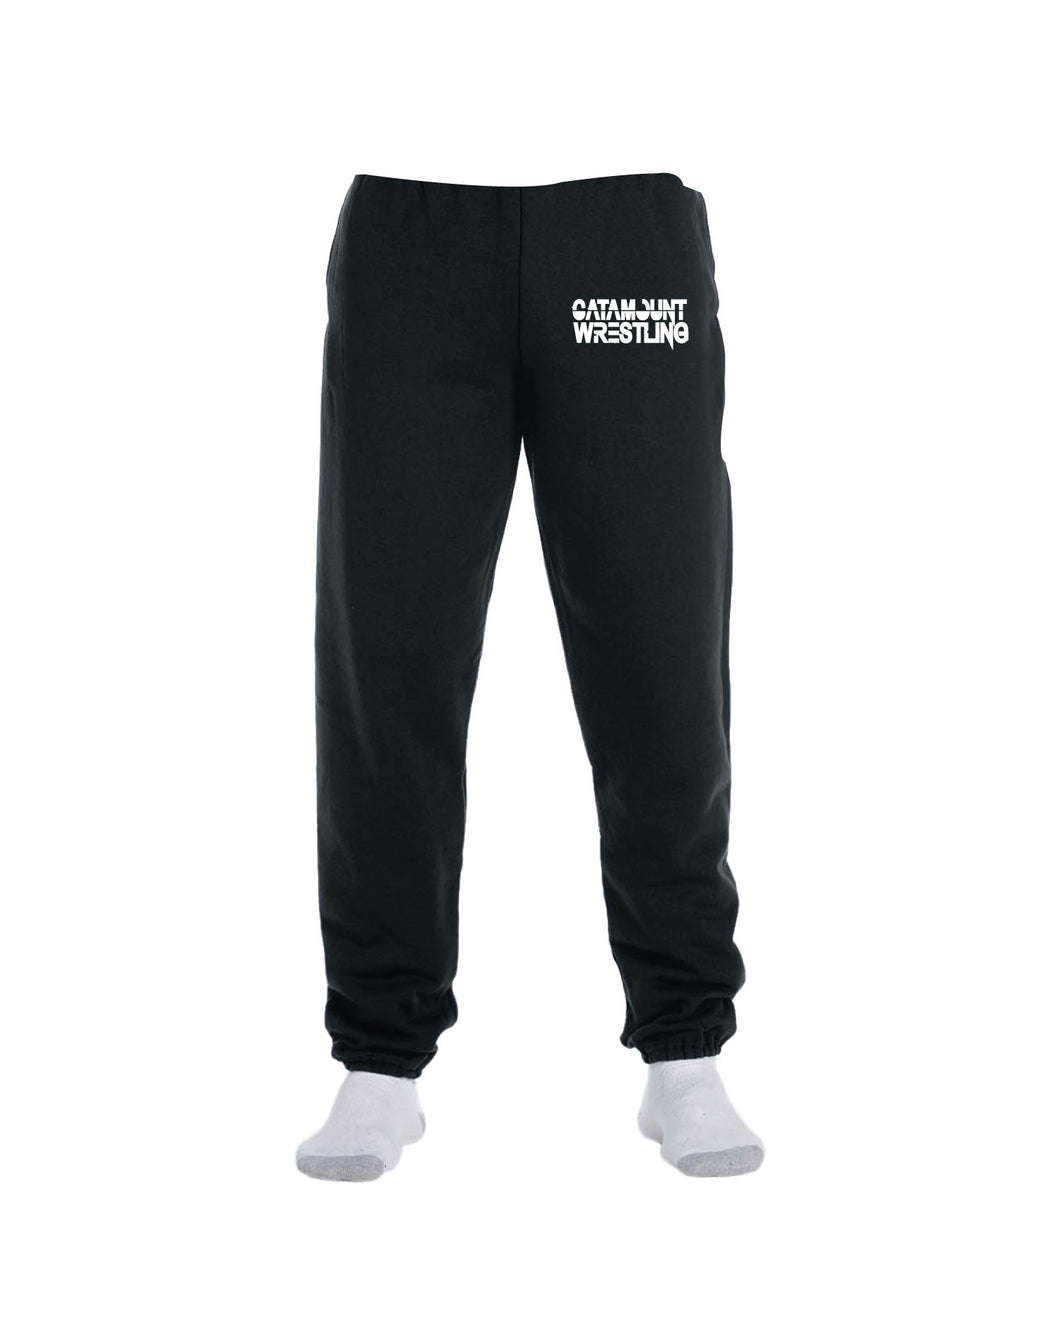 Catamount Wrestling Cotton Sweatpants